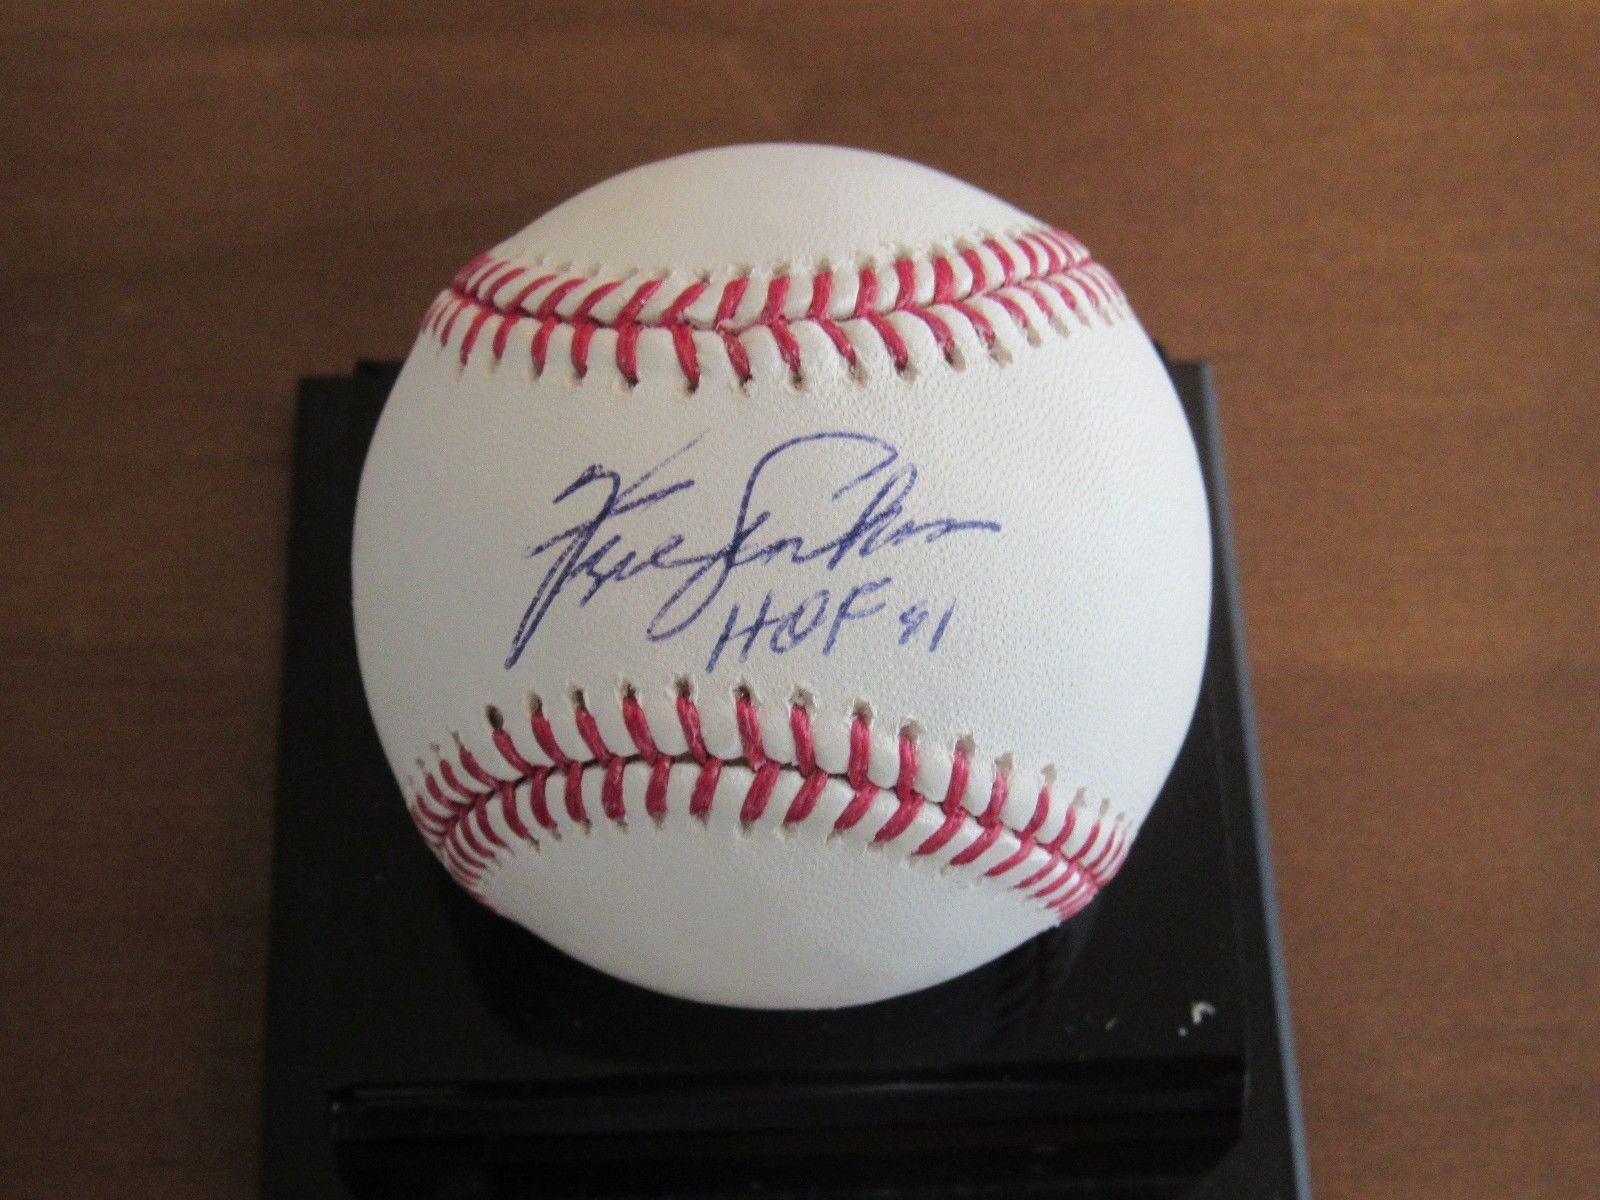 Primary image for FERGIE JENKINS HOF 81 CUBS RANGERS SIGNED AUTO BASEBALL JSA AUTHENTIC